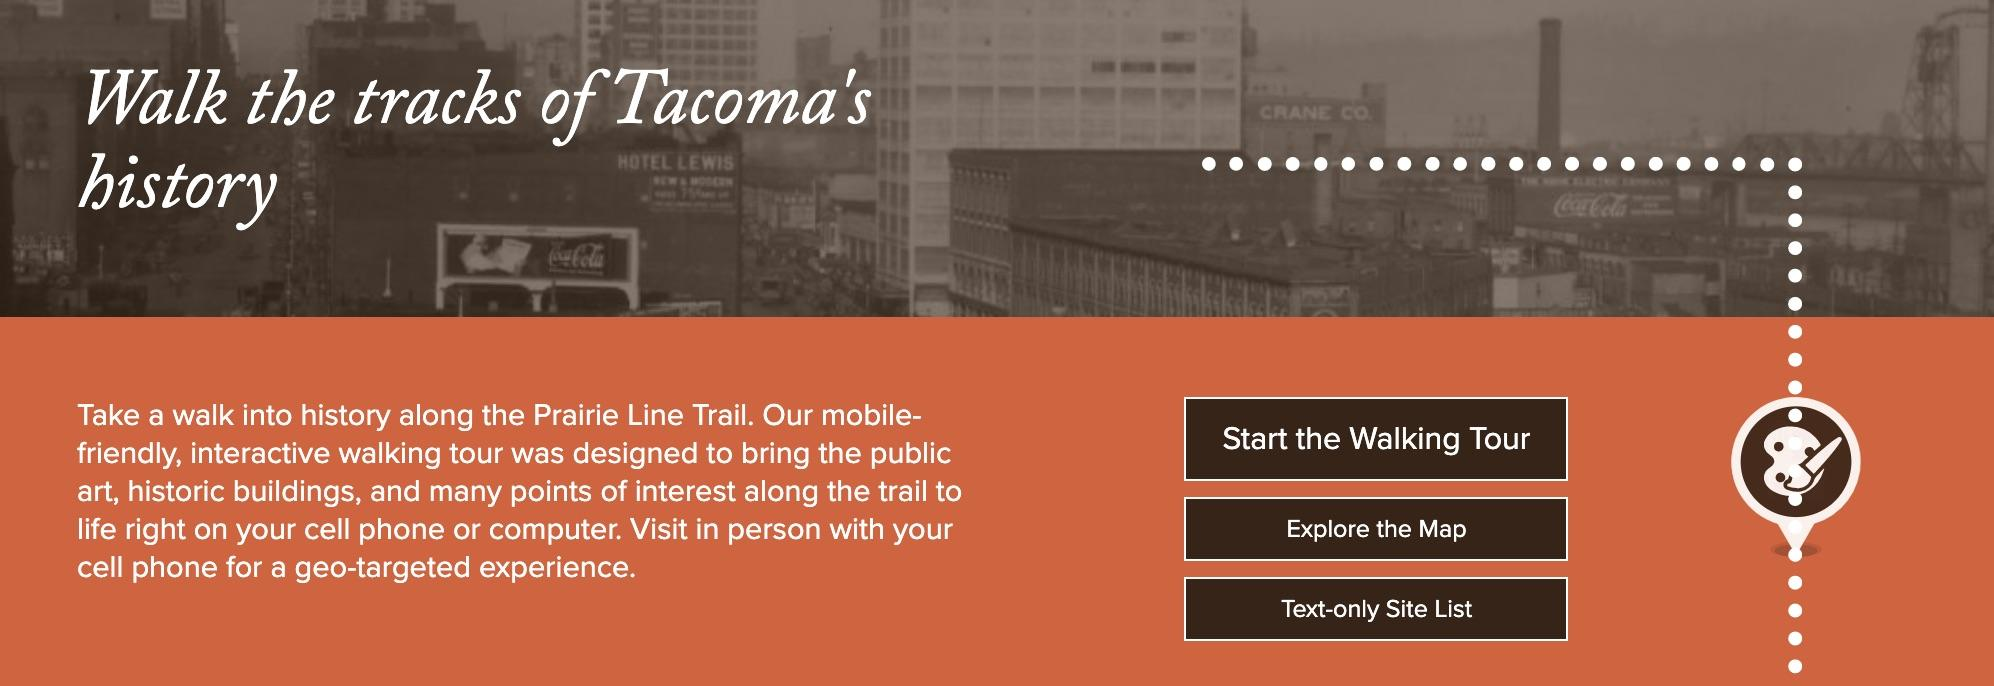 Screenshot image from PLT website featuring the words Walk the tracks of Tacoma